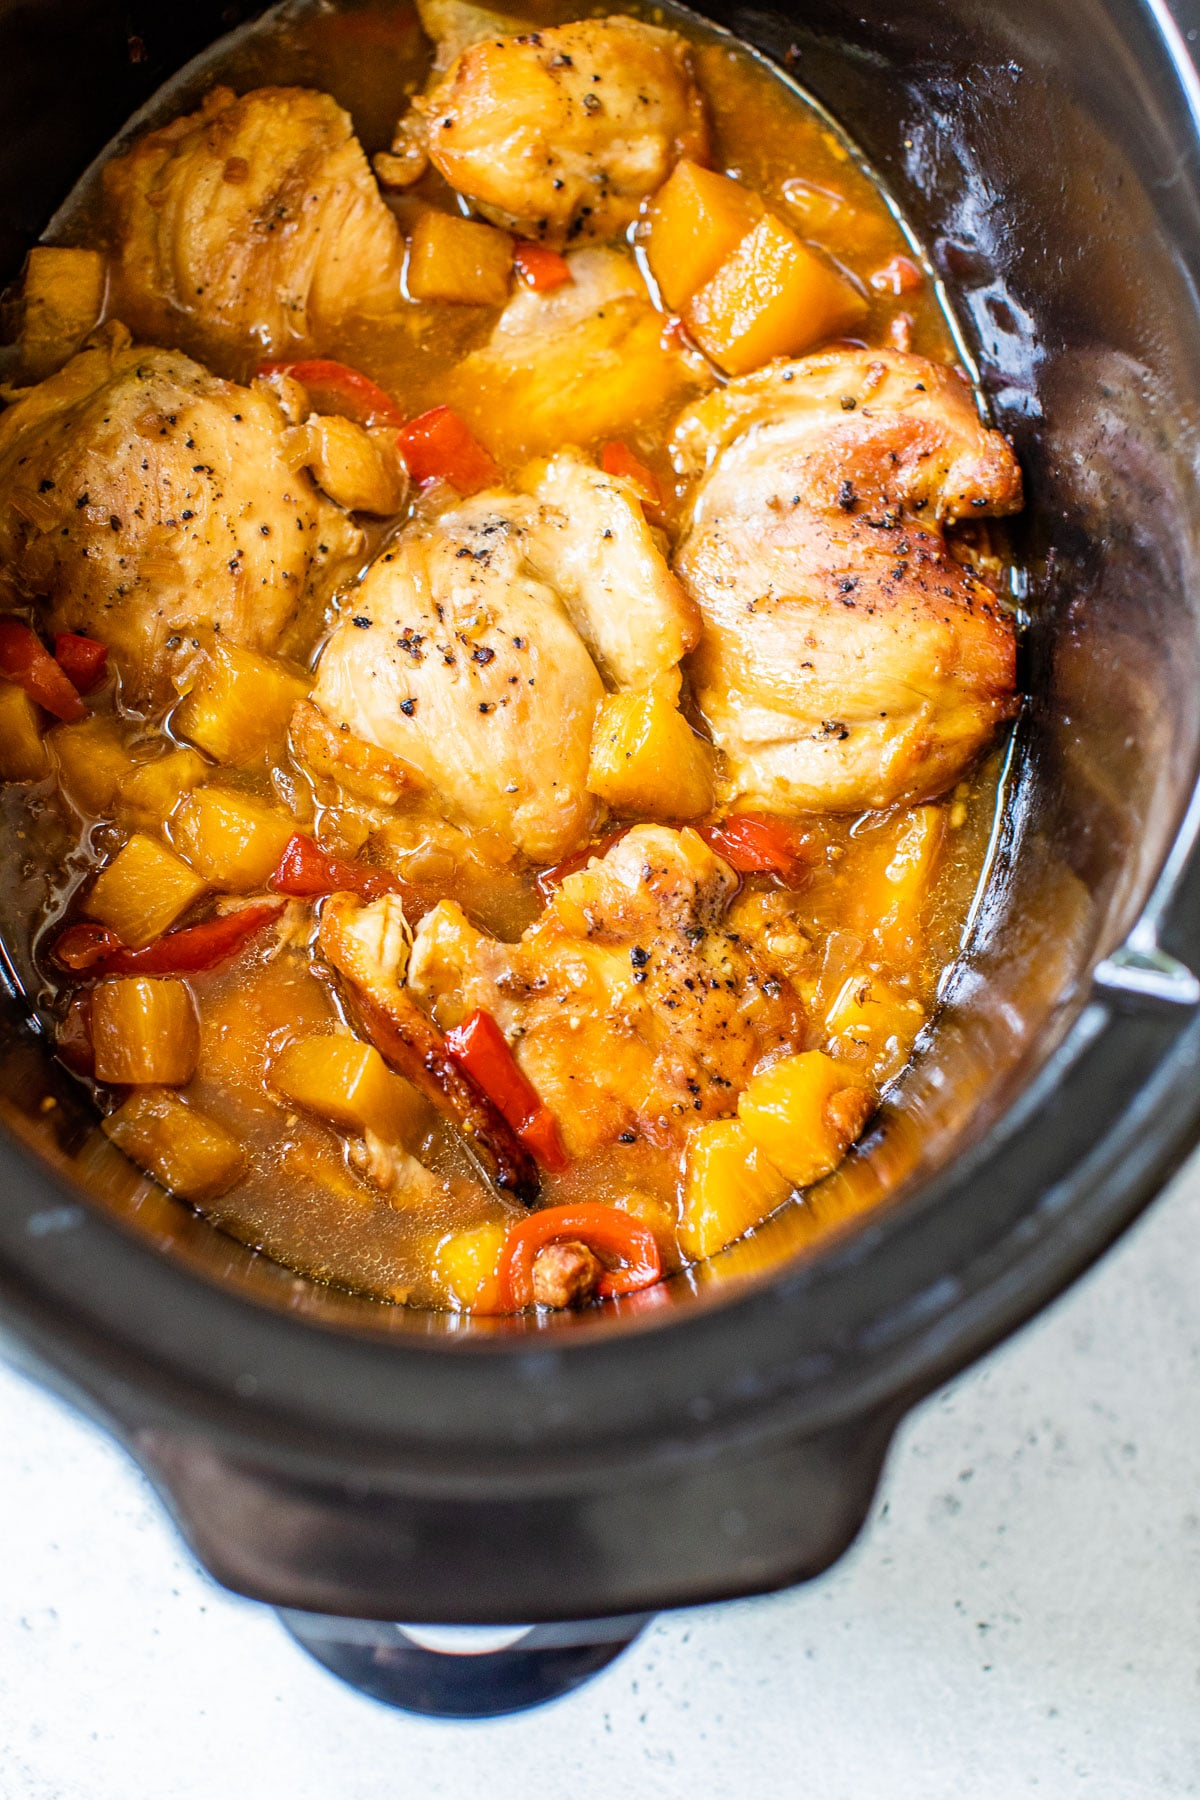 cooked chicken and veggies in a slow cooker